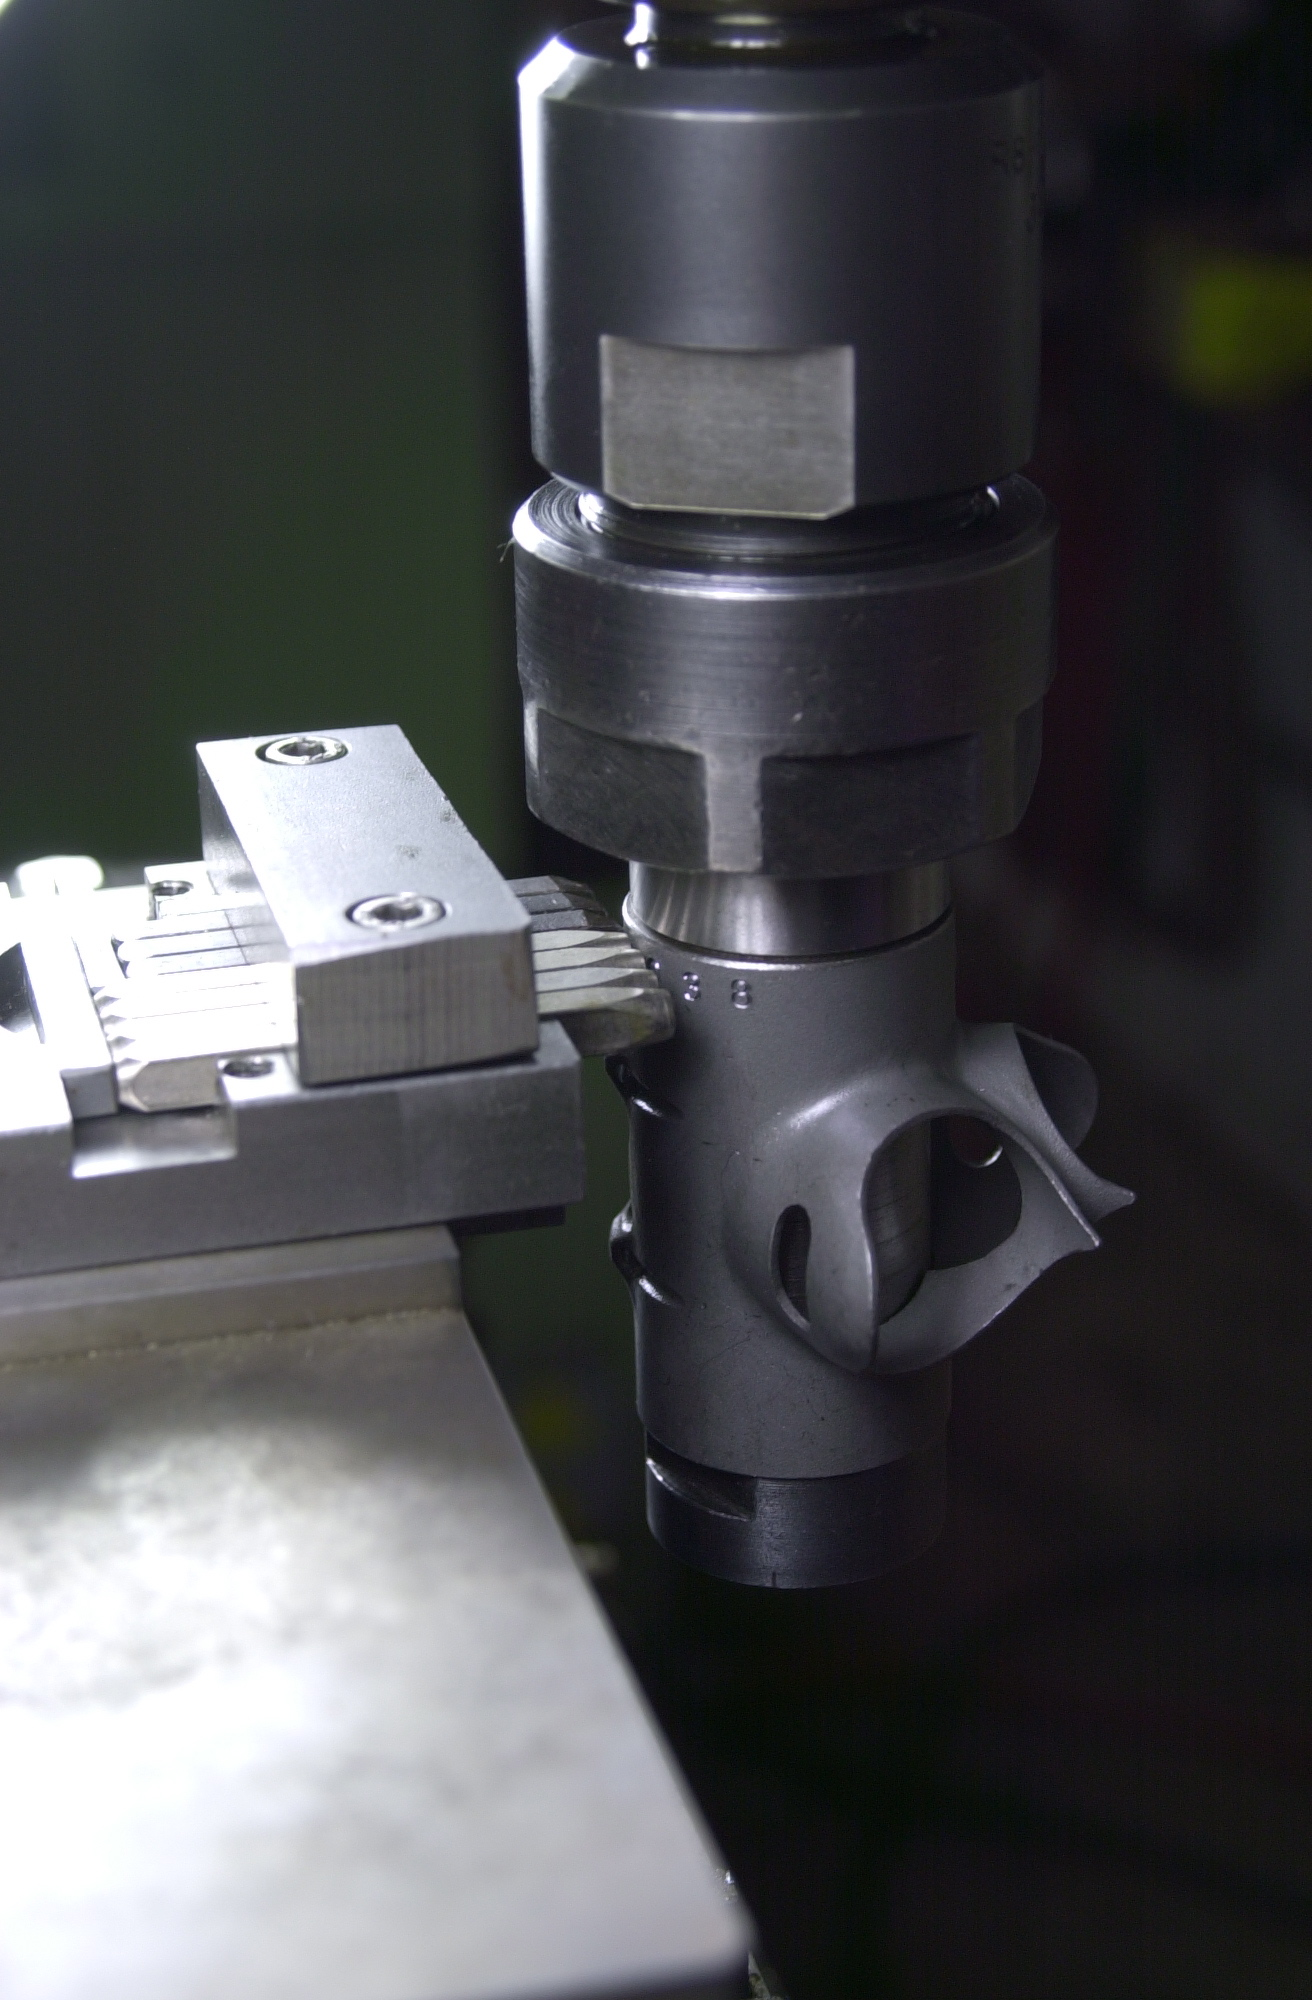 Roll stamping serial numbers into bottom bracket shells of a couple new frames coming up.  Stamps are held in a small fixture clamped in a Kurt machine vise while the bottom bracket shell is secured in an arbor held in a collet.  The collet is free to rotate in the Bridgeport mill while the stamps roll by under pressure.